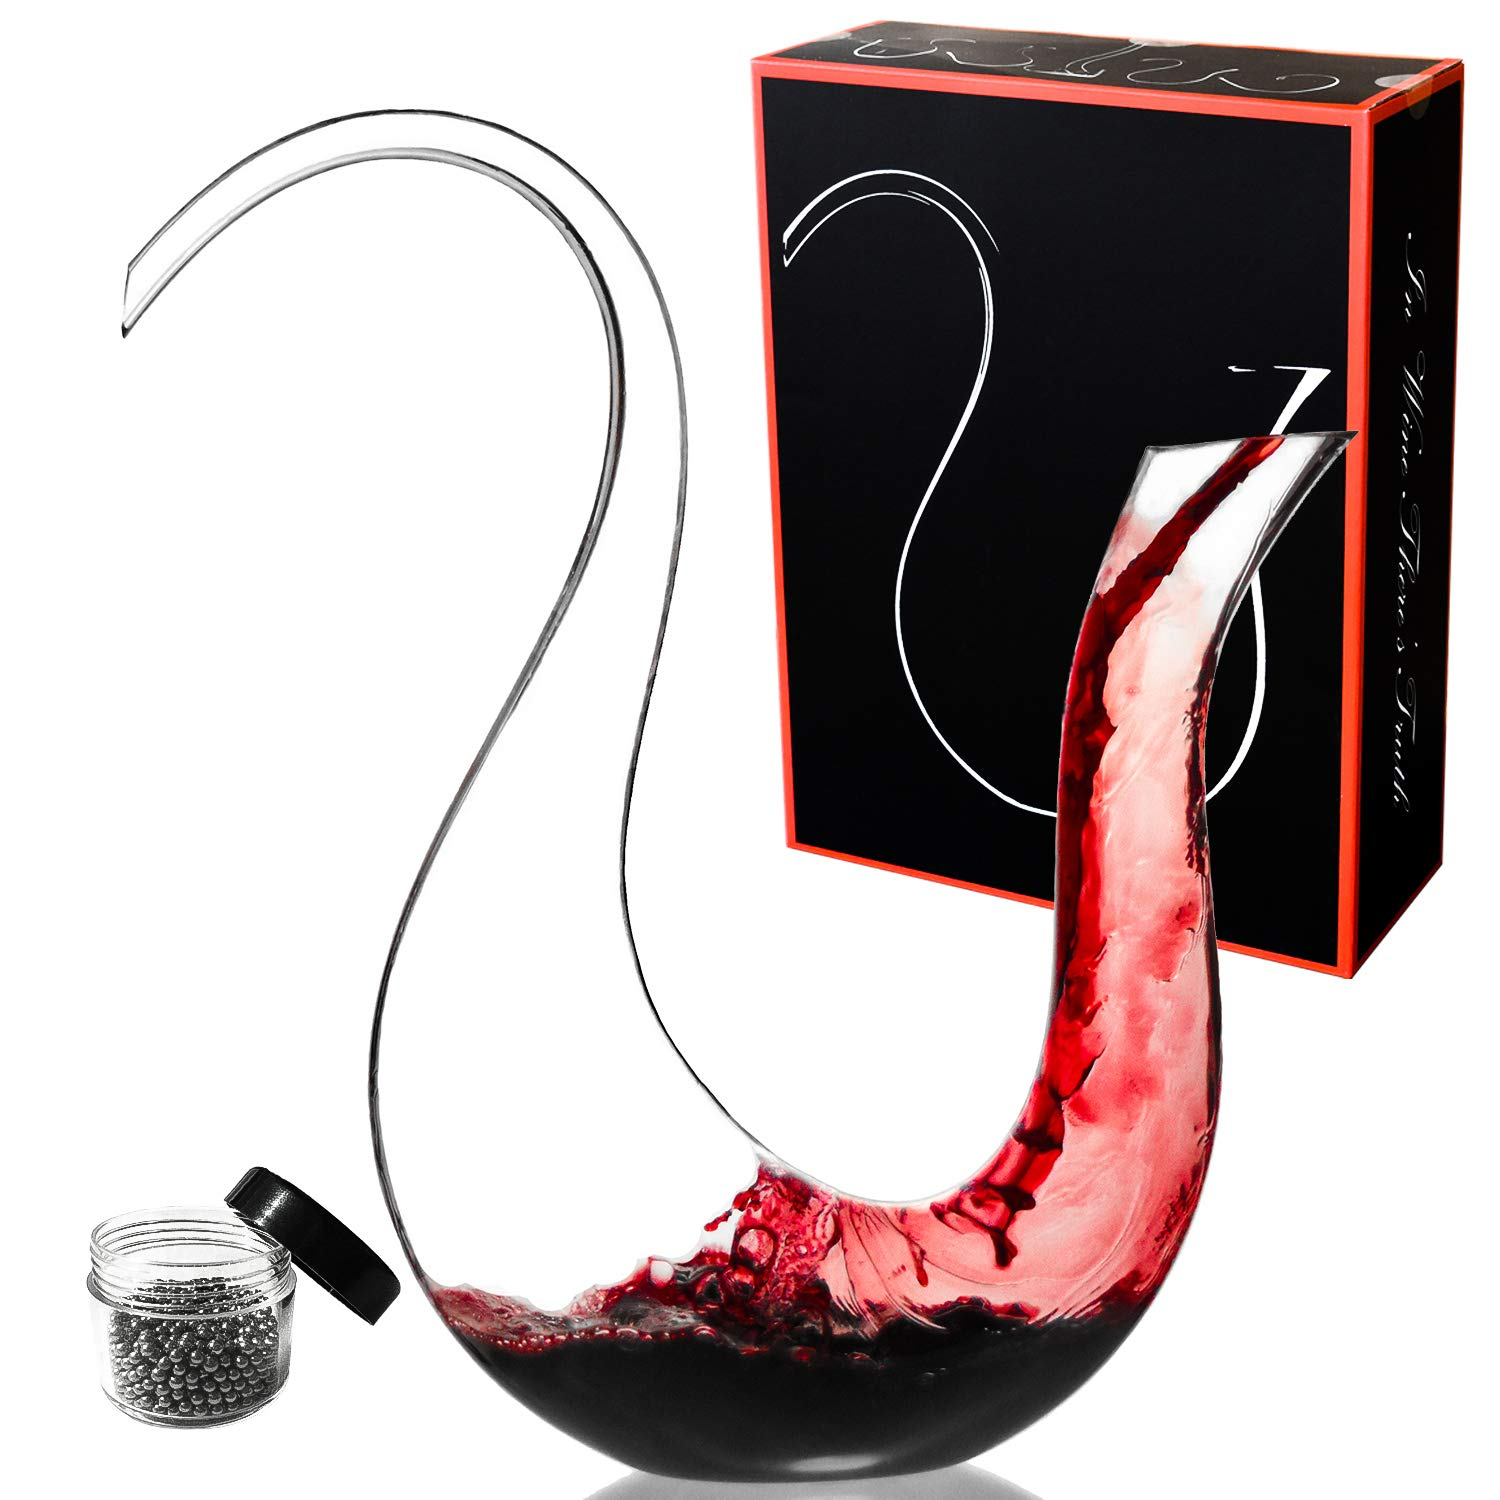 Le Sens Amazing Home Swan Wine Decanter 100% Hand Blown Lead-free Crystal Glass, Prepackaged Red Wine Carafe, Wine Gift, Wine Accessories, Luxury Gift Box Wrapped and Free Cleaning Beads Set by Le Sens Amazing Home